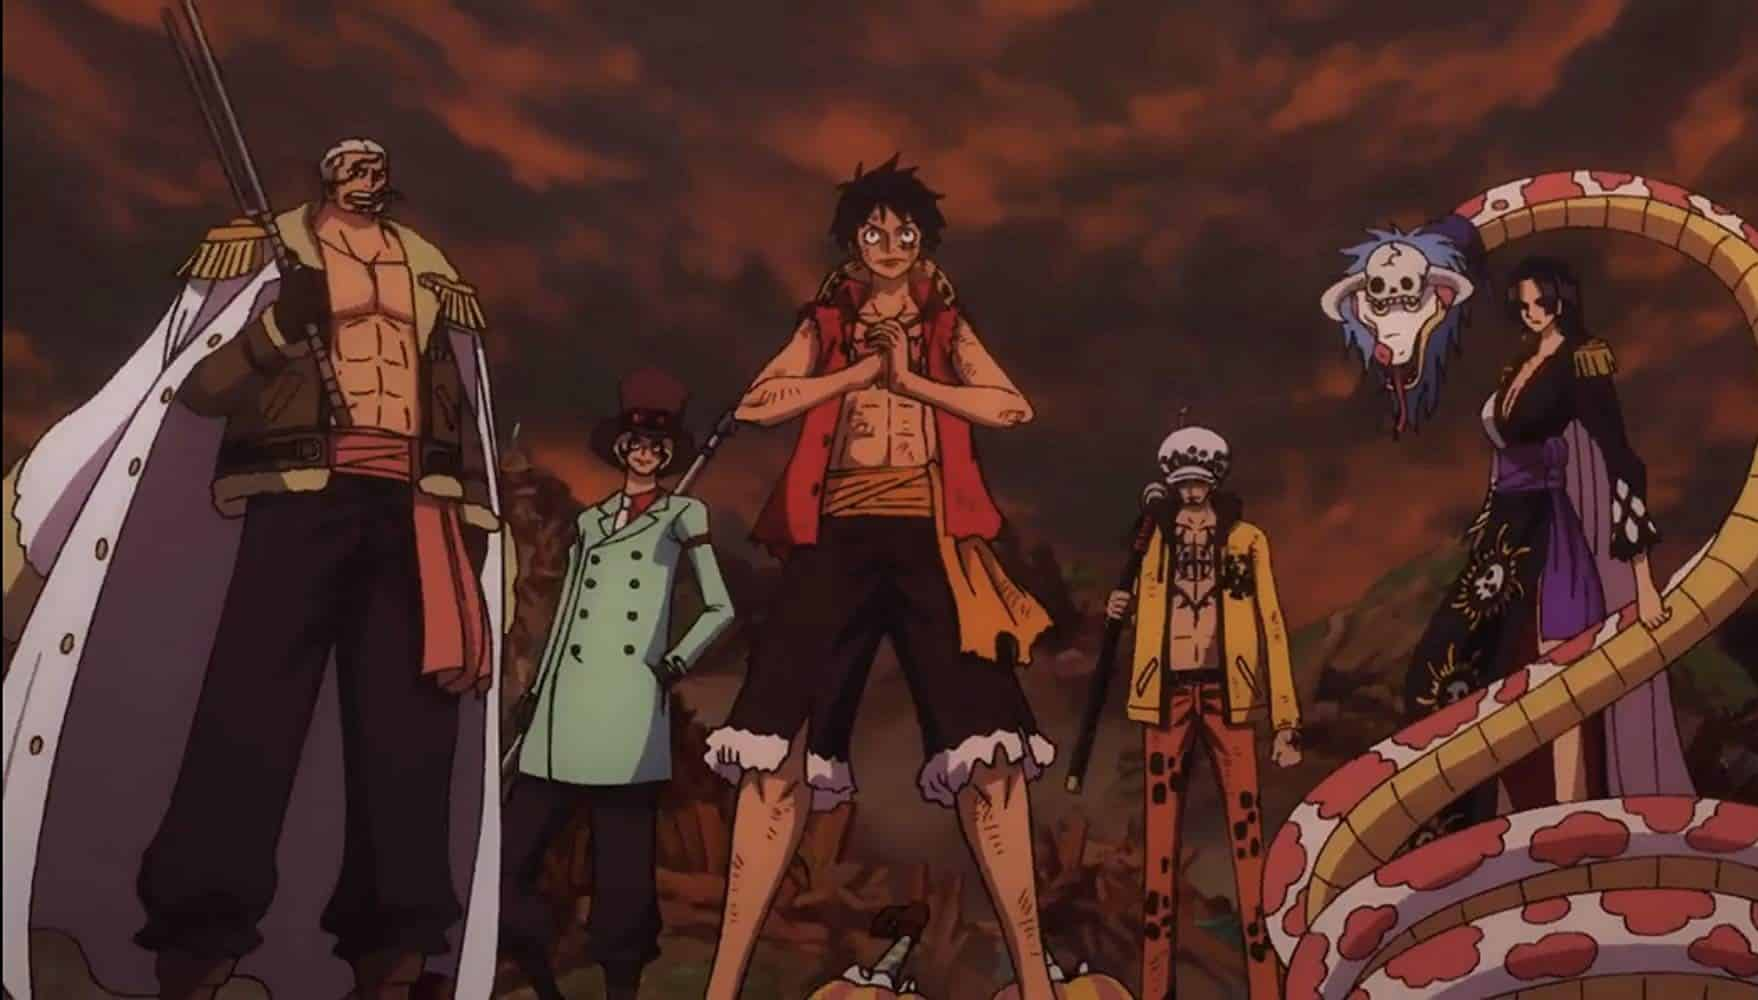 fotograma one piece estampida